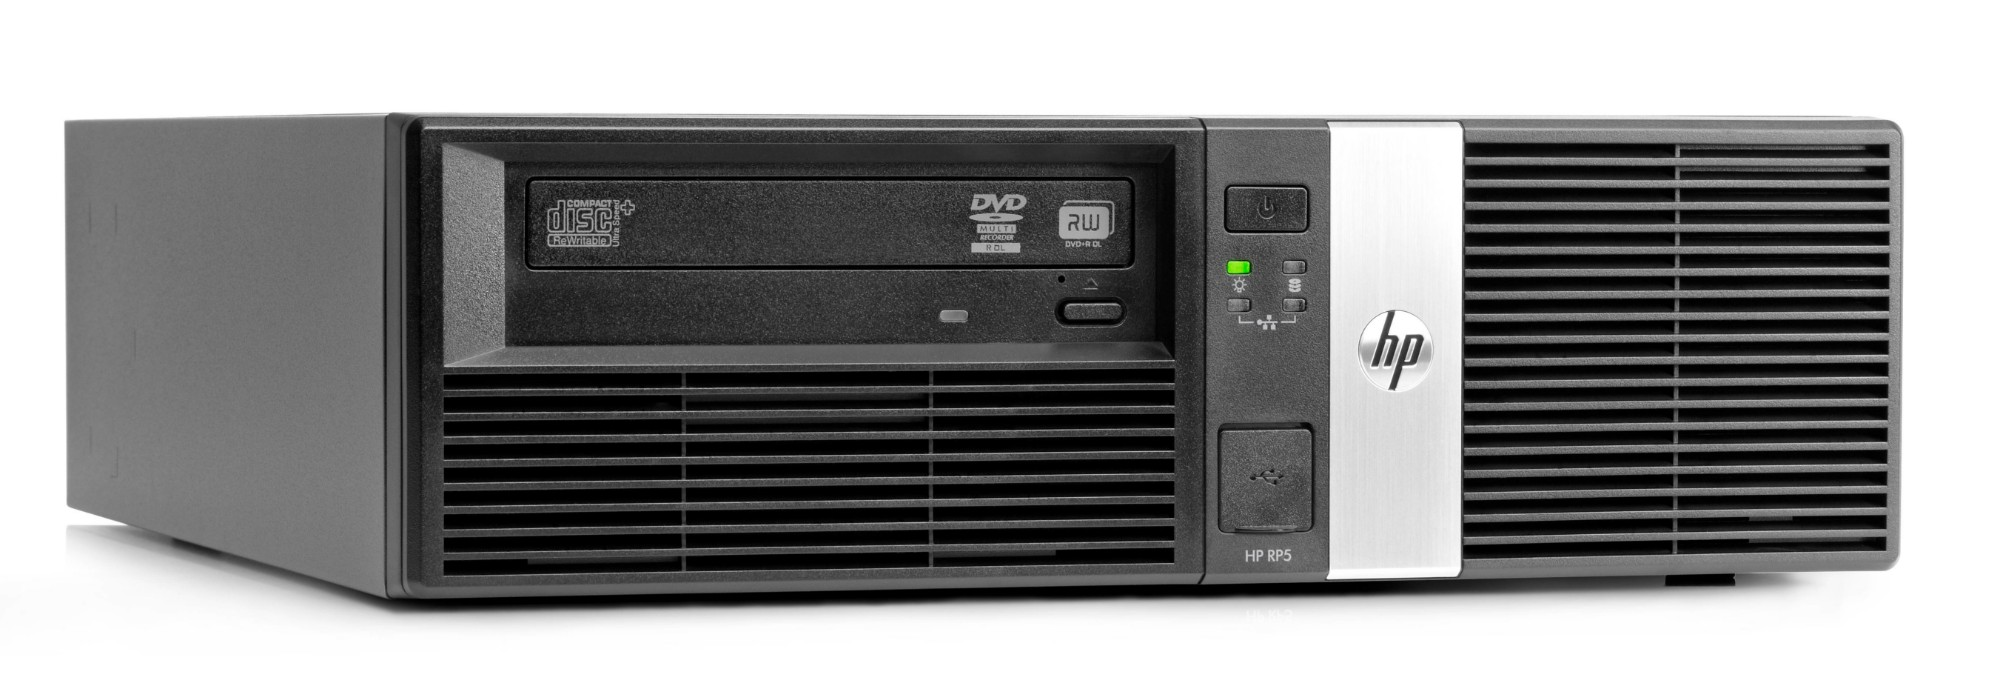 Hp Rp Rp5 Retail System Model 5810 0 In Distributor